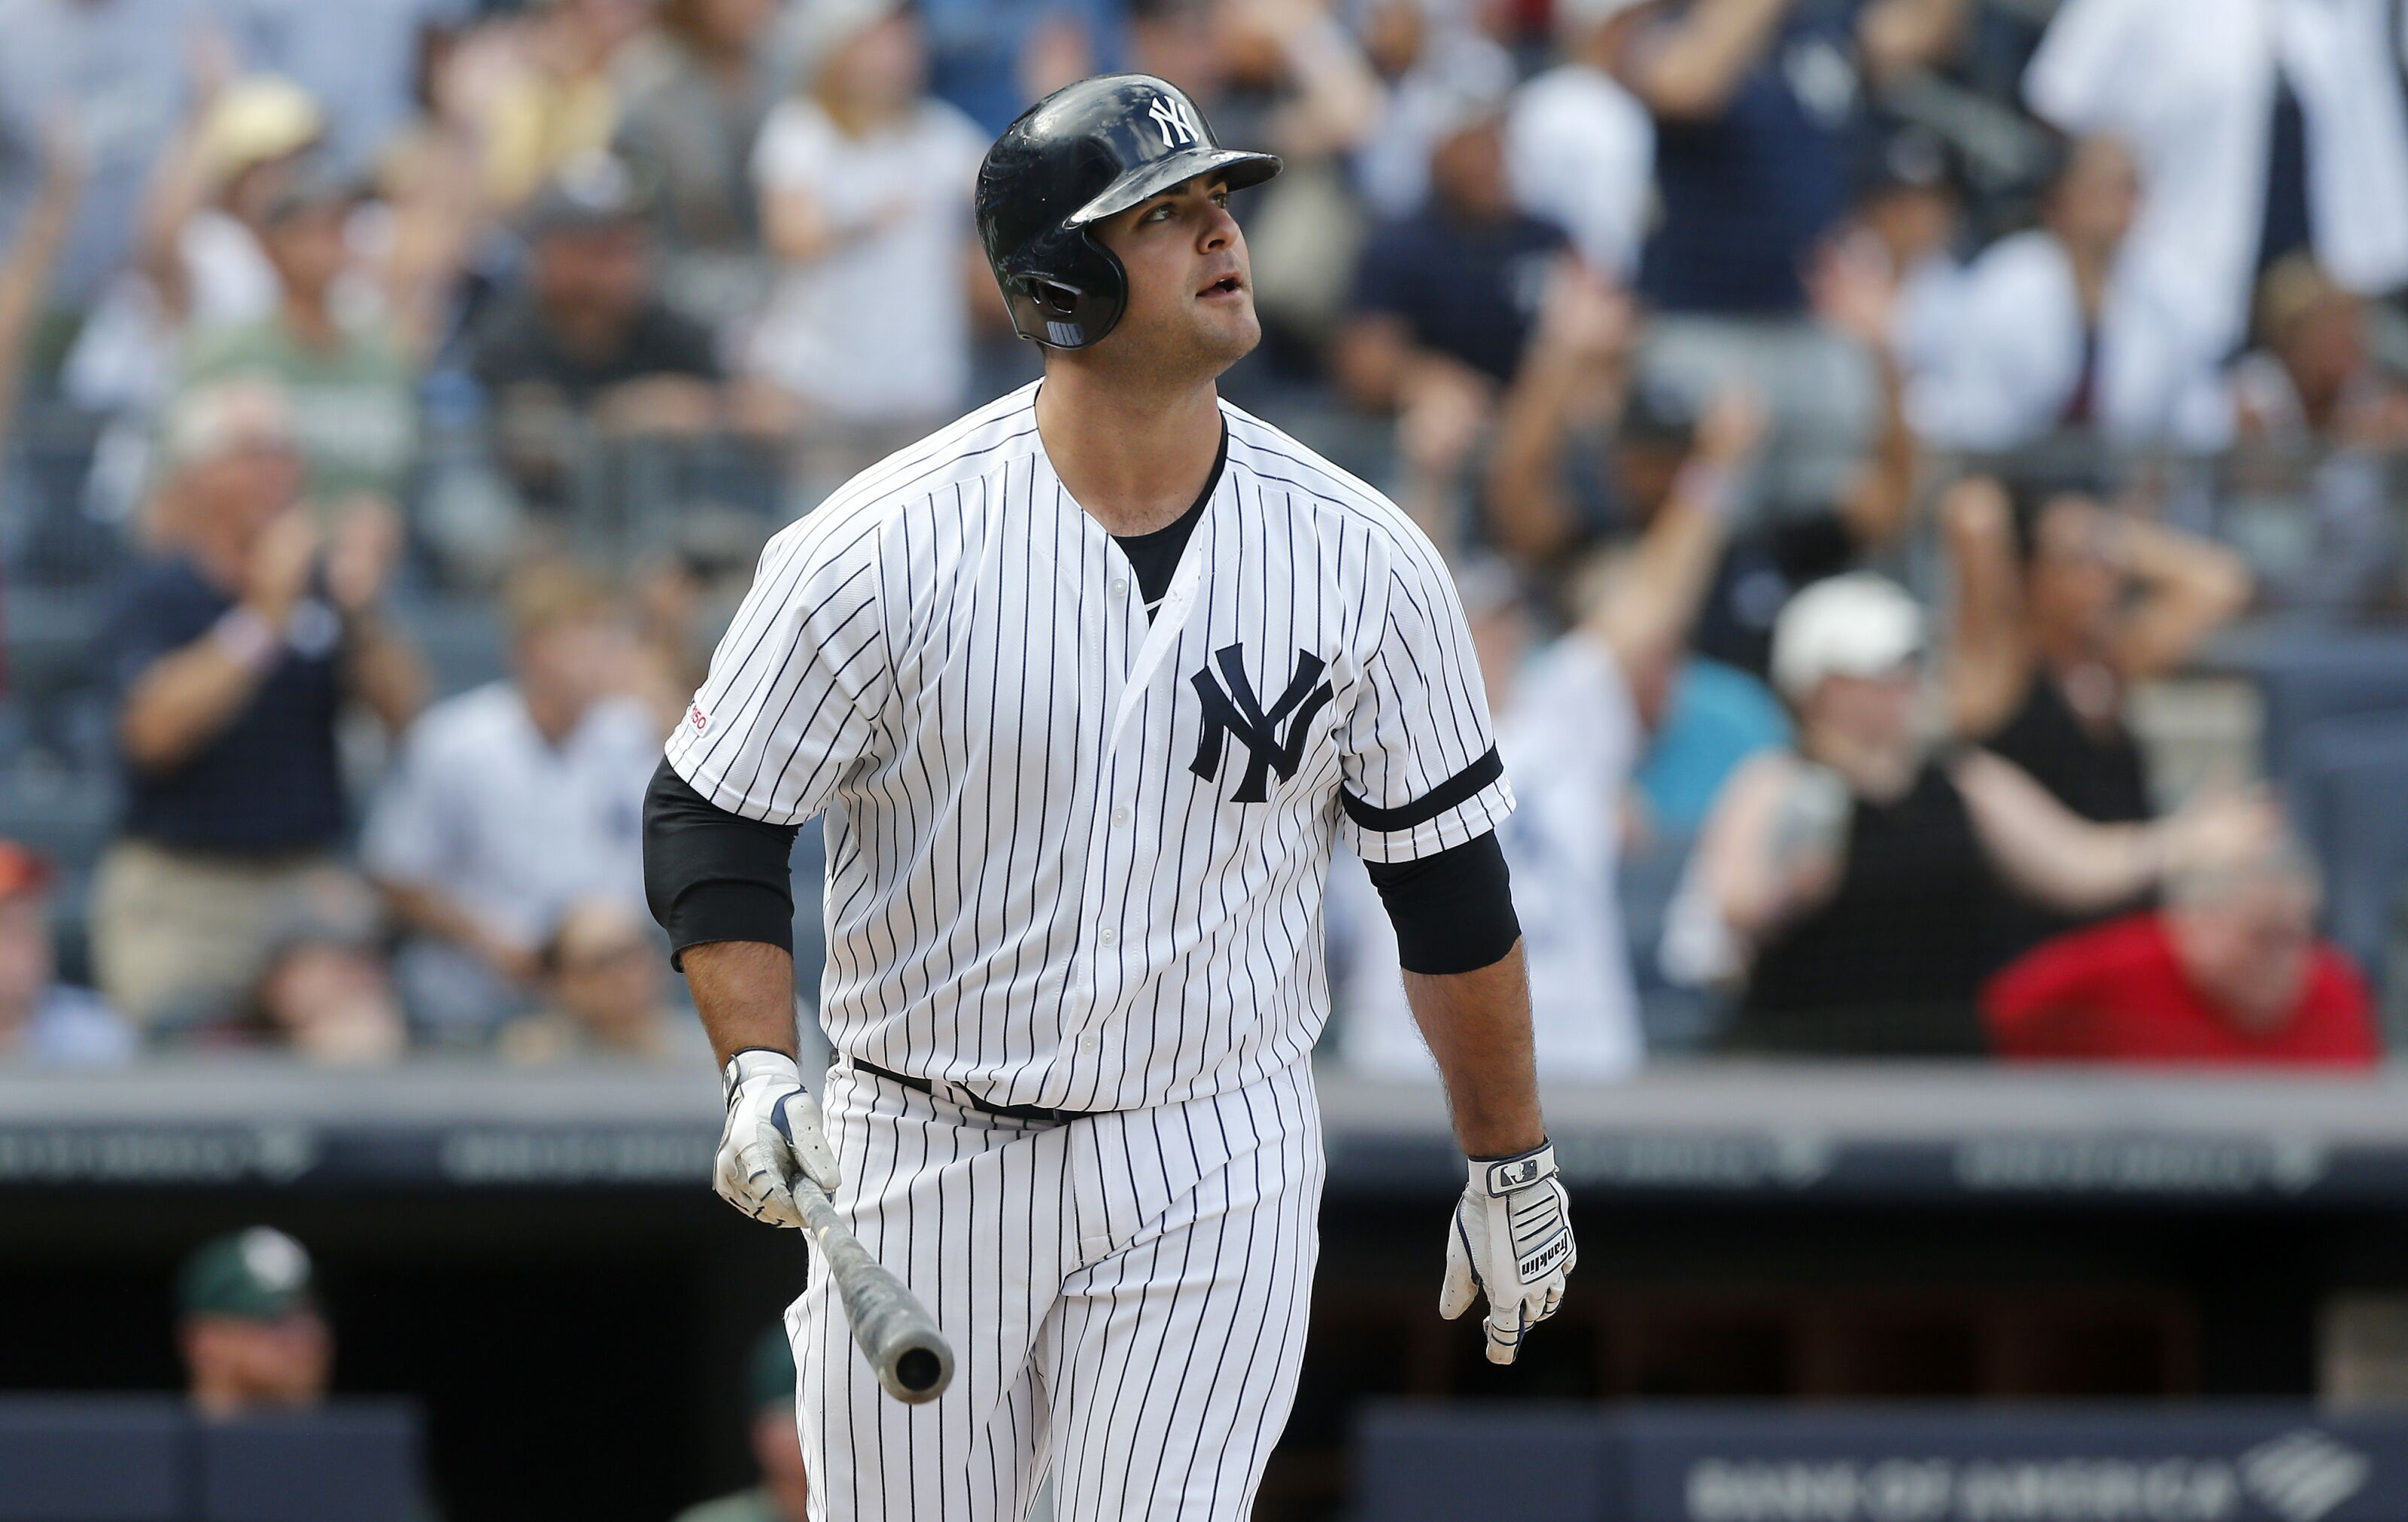 Yankees: Can Mike Ford challenge Luke Voit for the starting first base job in 2020?